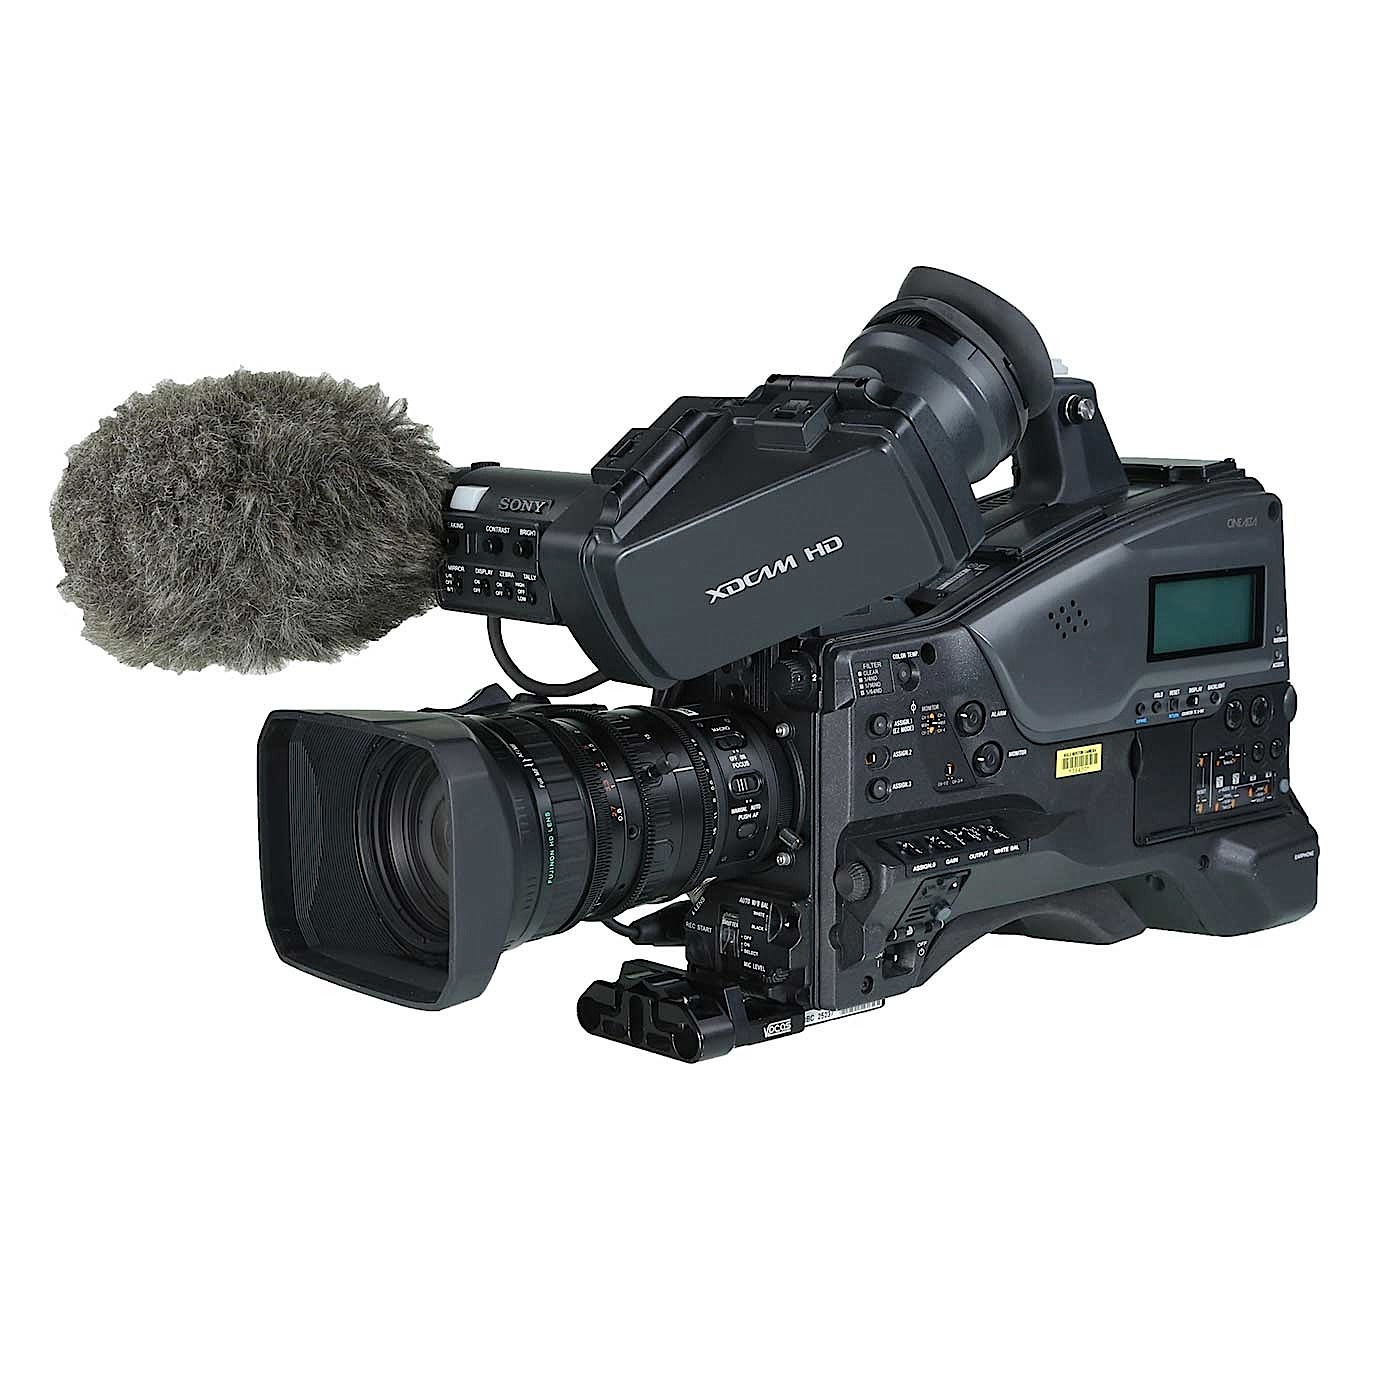 Sony Pmw 350 Xdcam Ex Camcorder Rule Camera